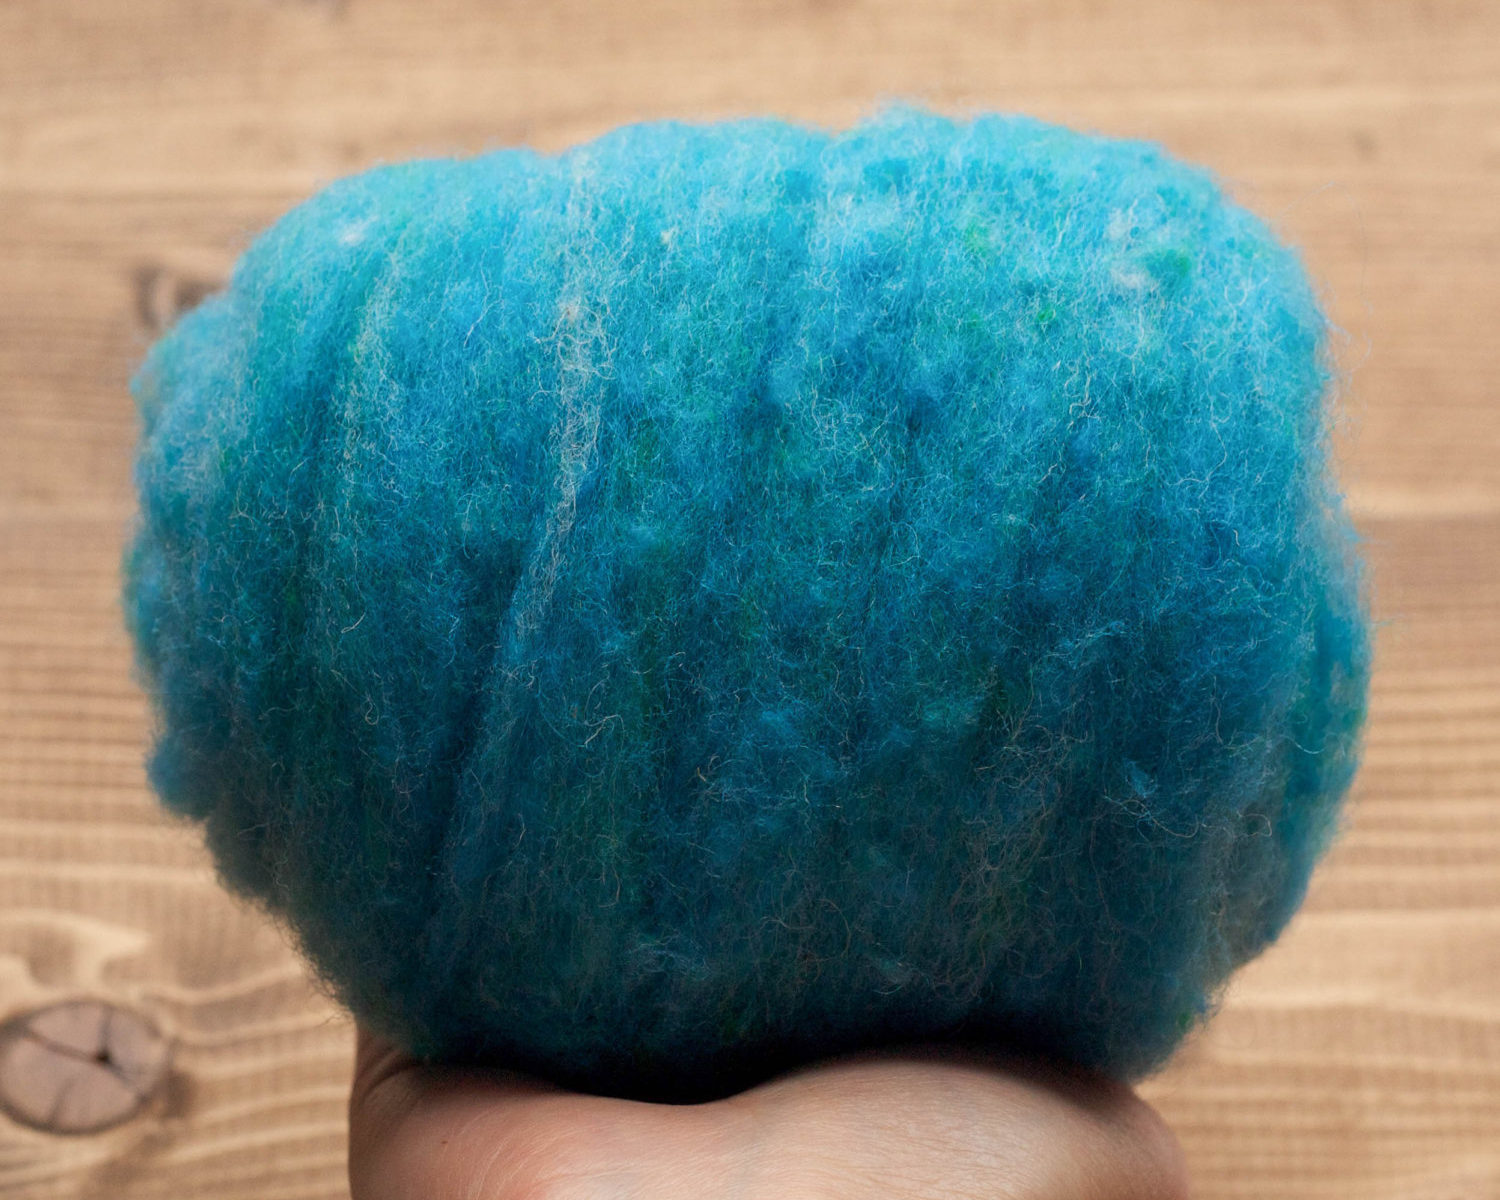 Cerulean Blue Needle Felting Wool, Wool Batting, Batts, Wet Felting, Spinning, Dyed Felting Wool, Turquoise Blue, Fiber Art Supplies